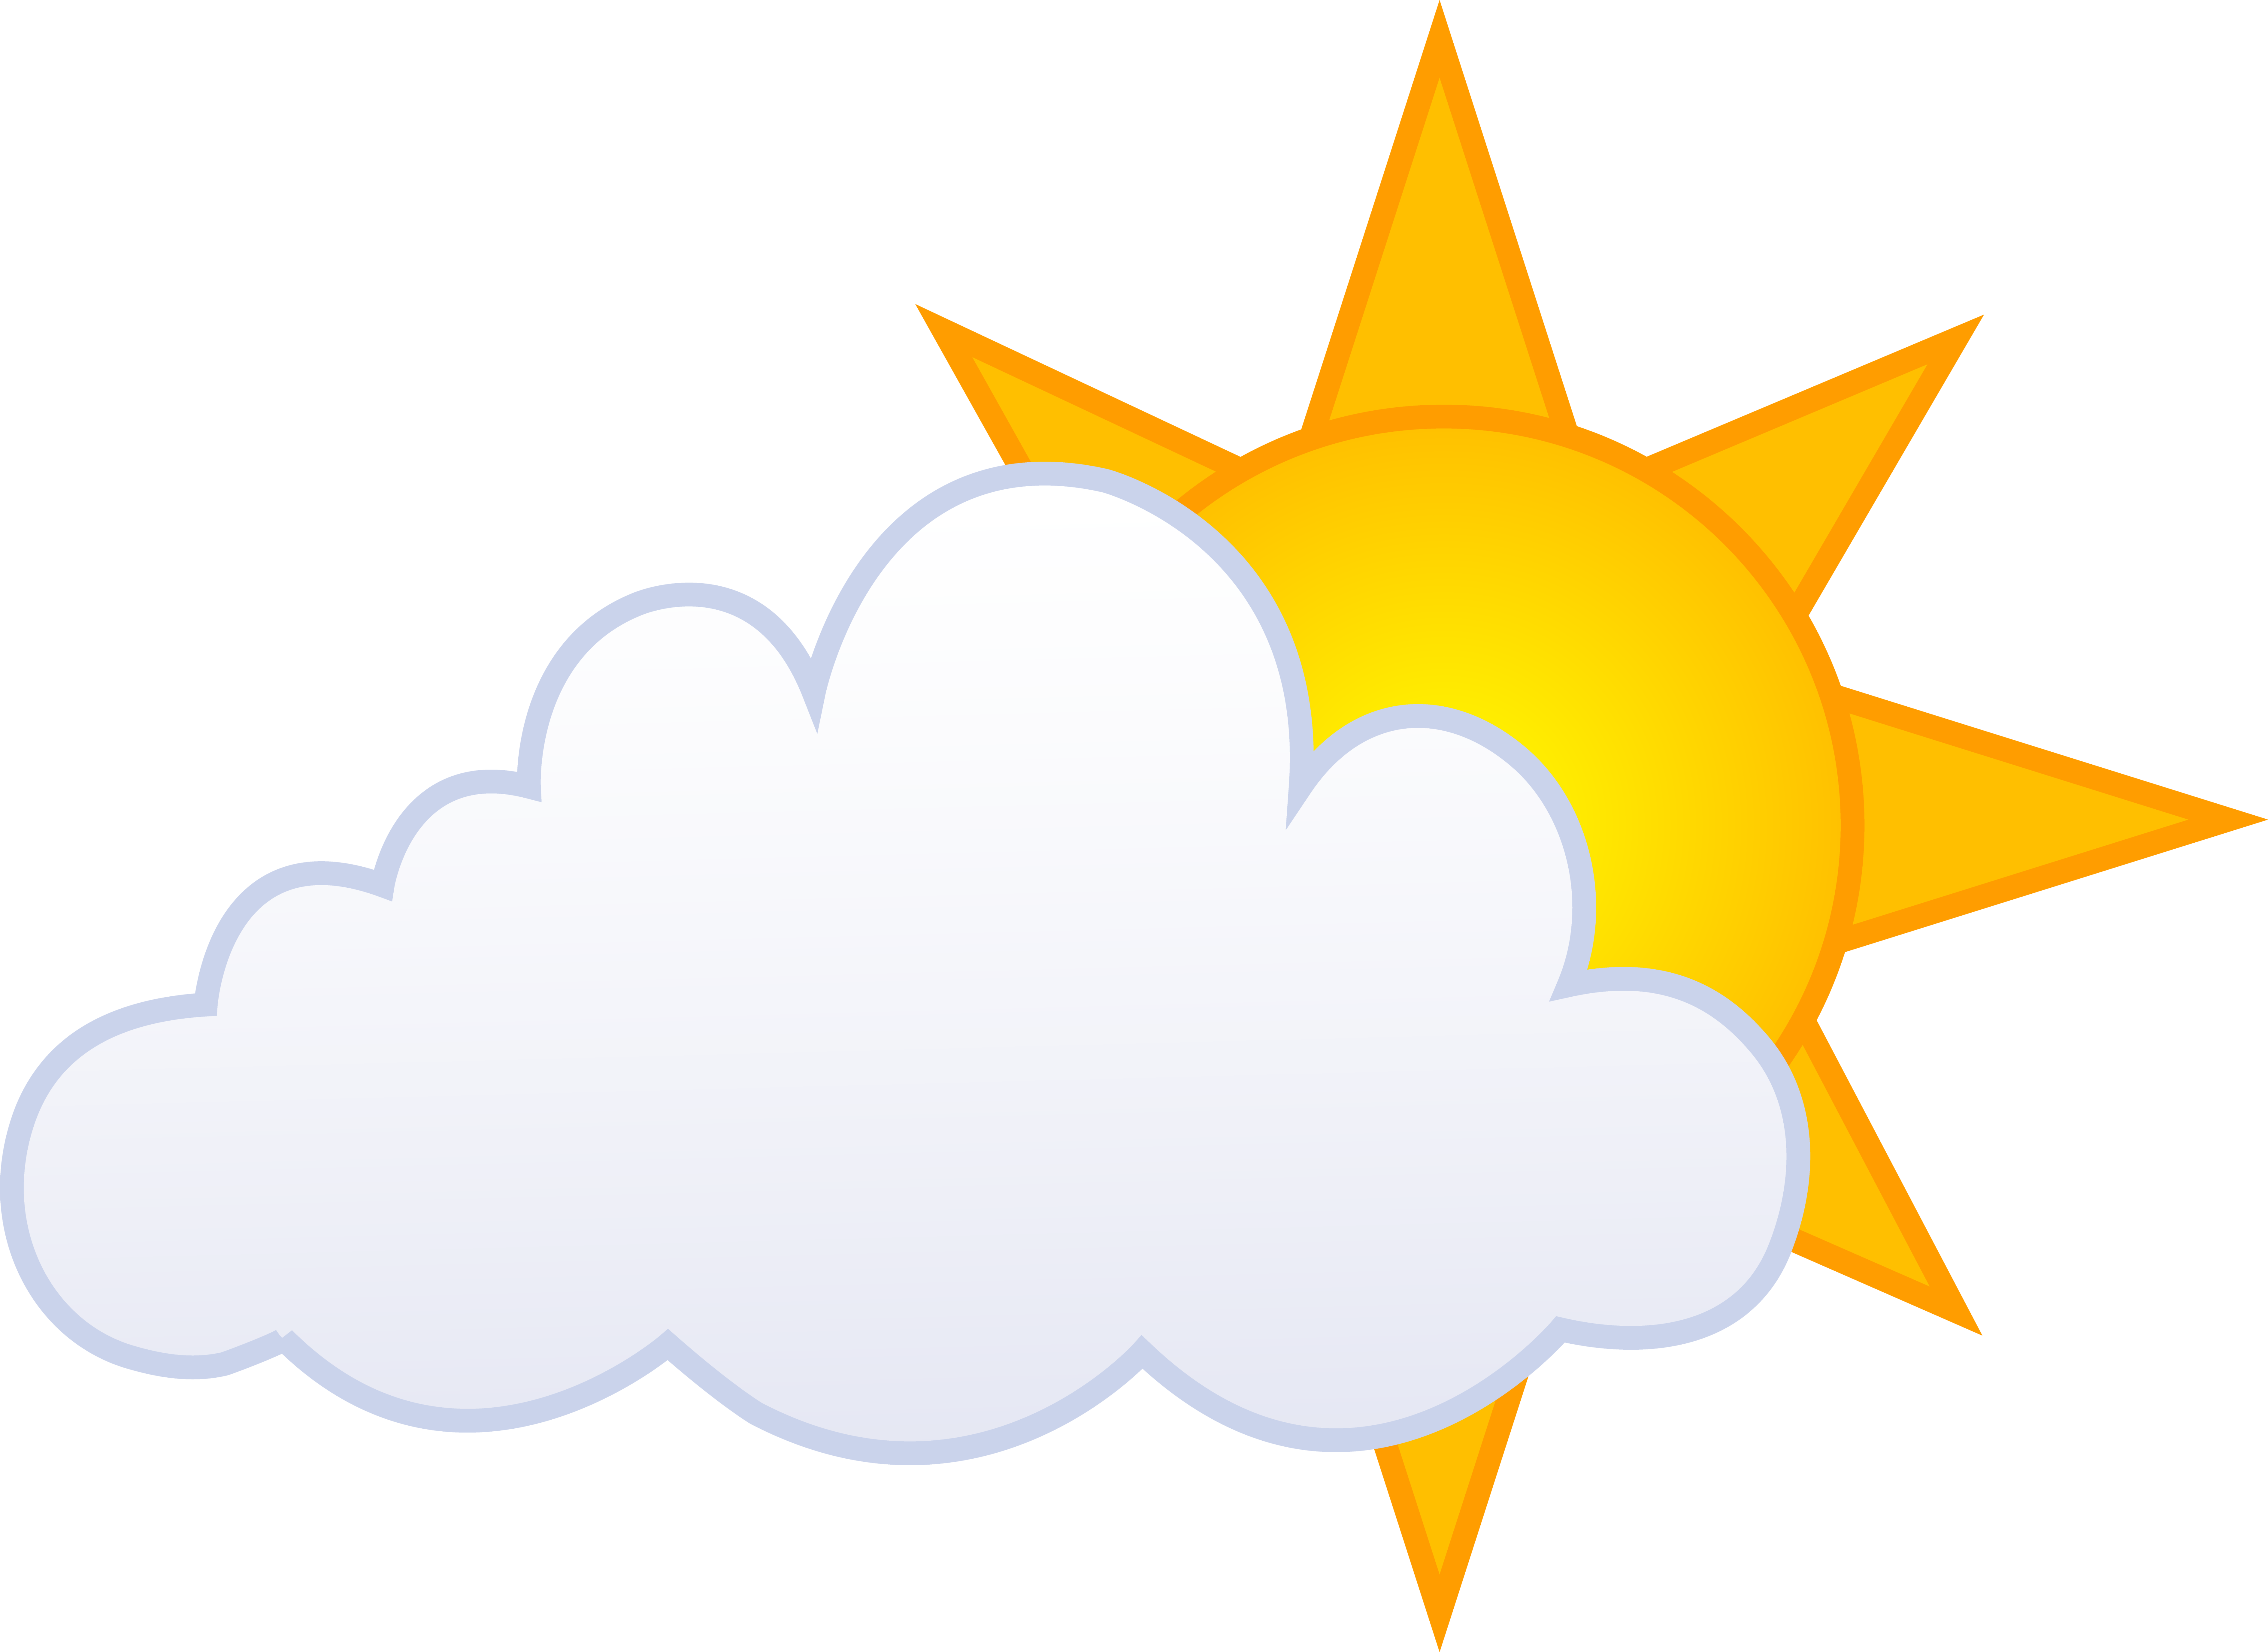 Weather sun clipart jpg black and white stock Weather Clipart at GetDrawings.com | Free for personal use Weather ... jpg black and white stock